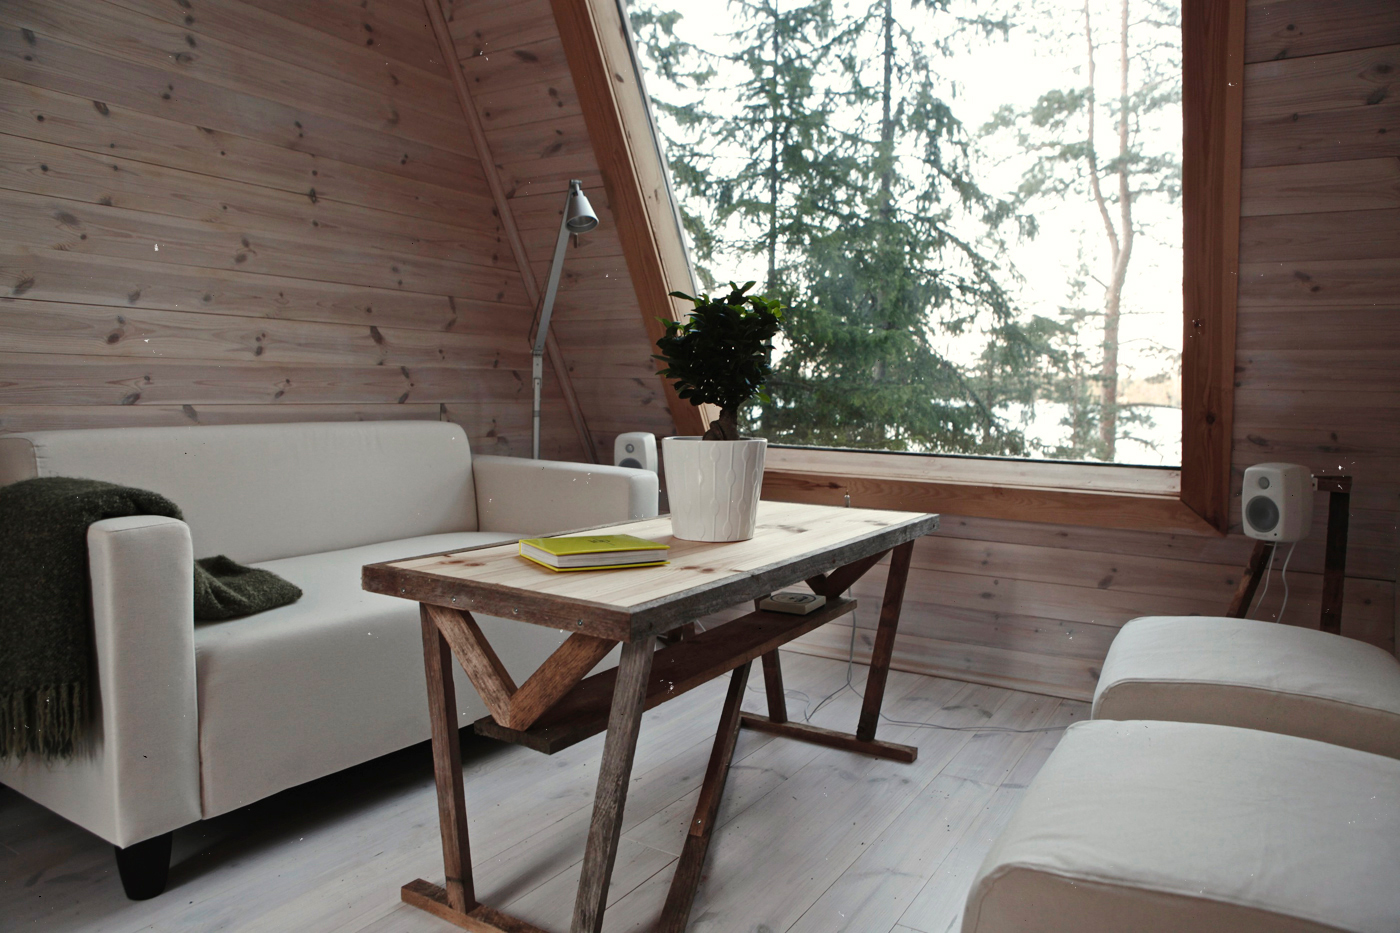 A Tiny House With A Minimalist Living Room In The Heart Of Finland